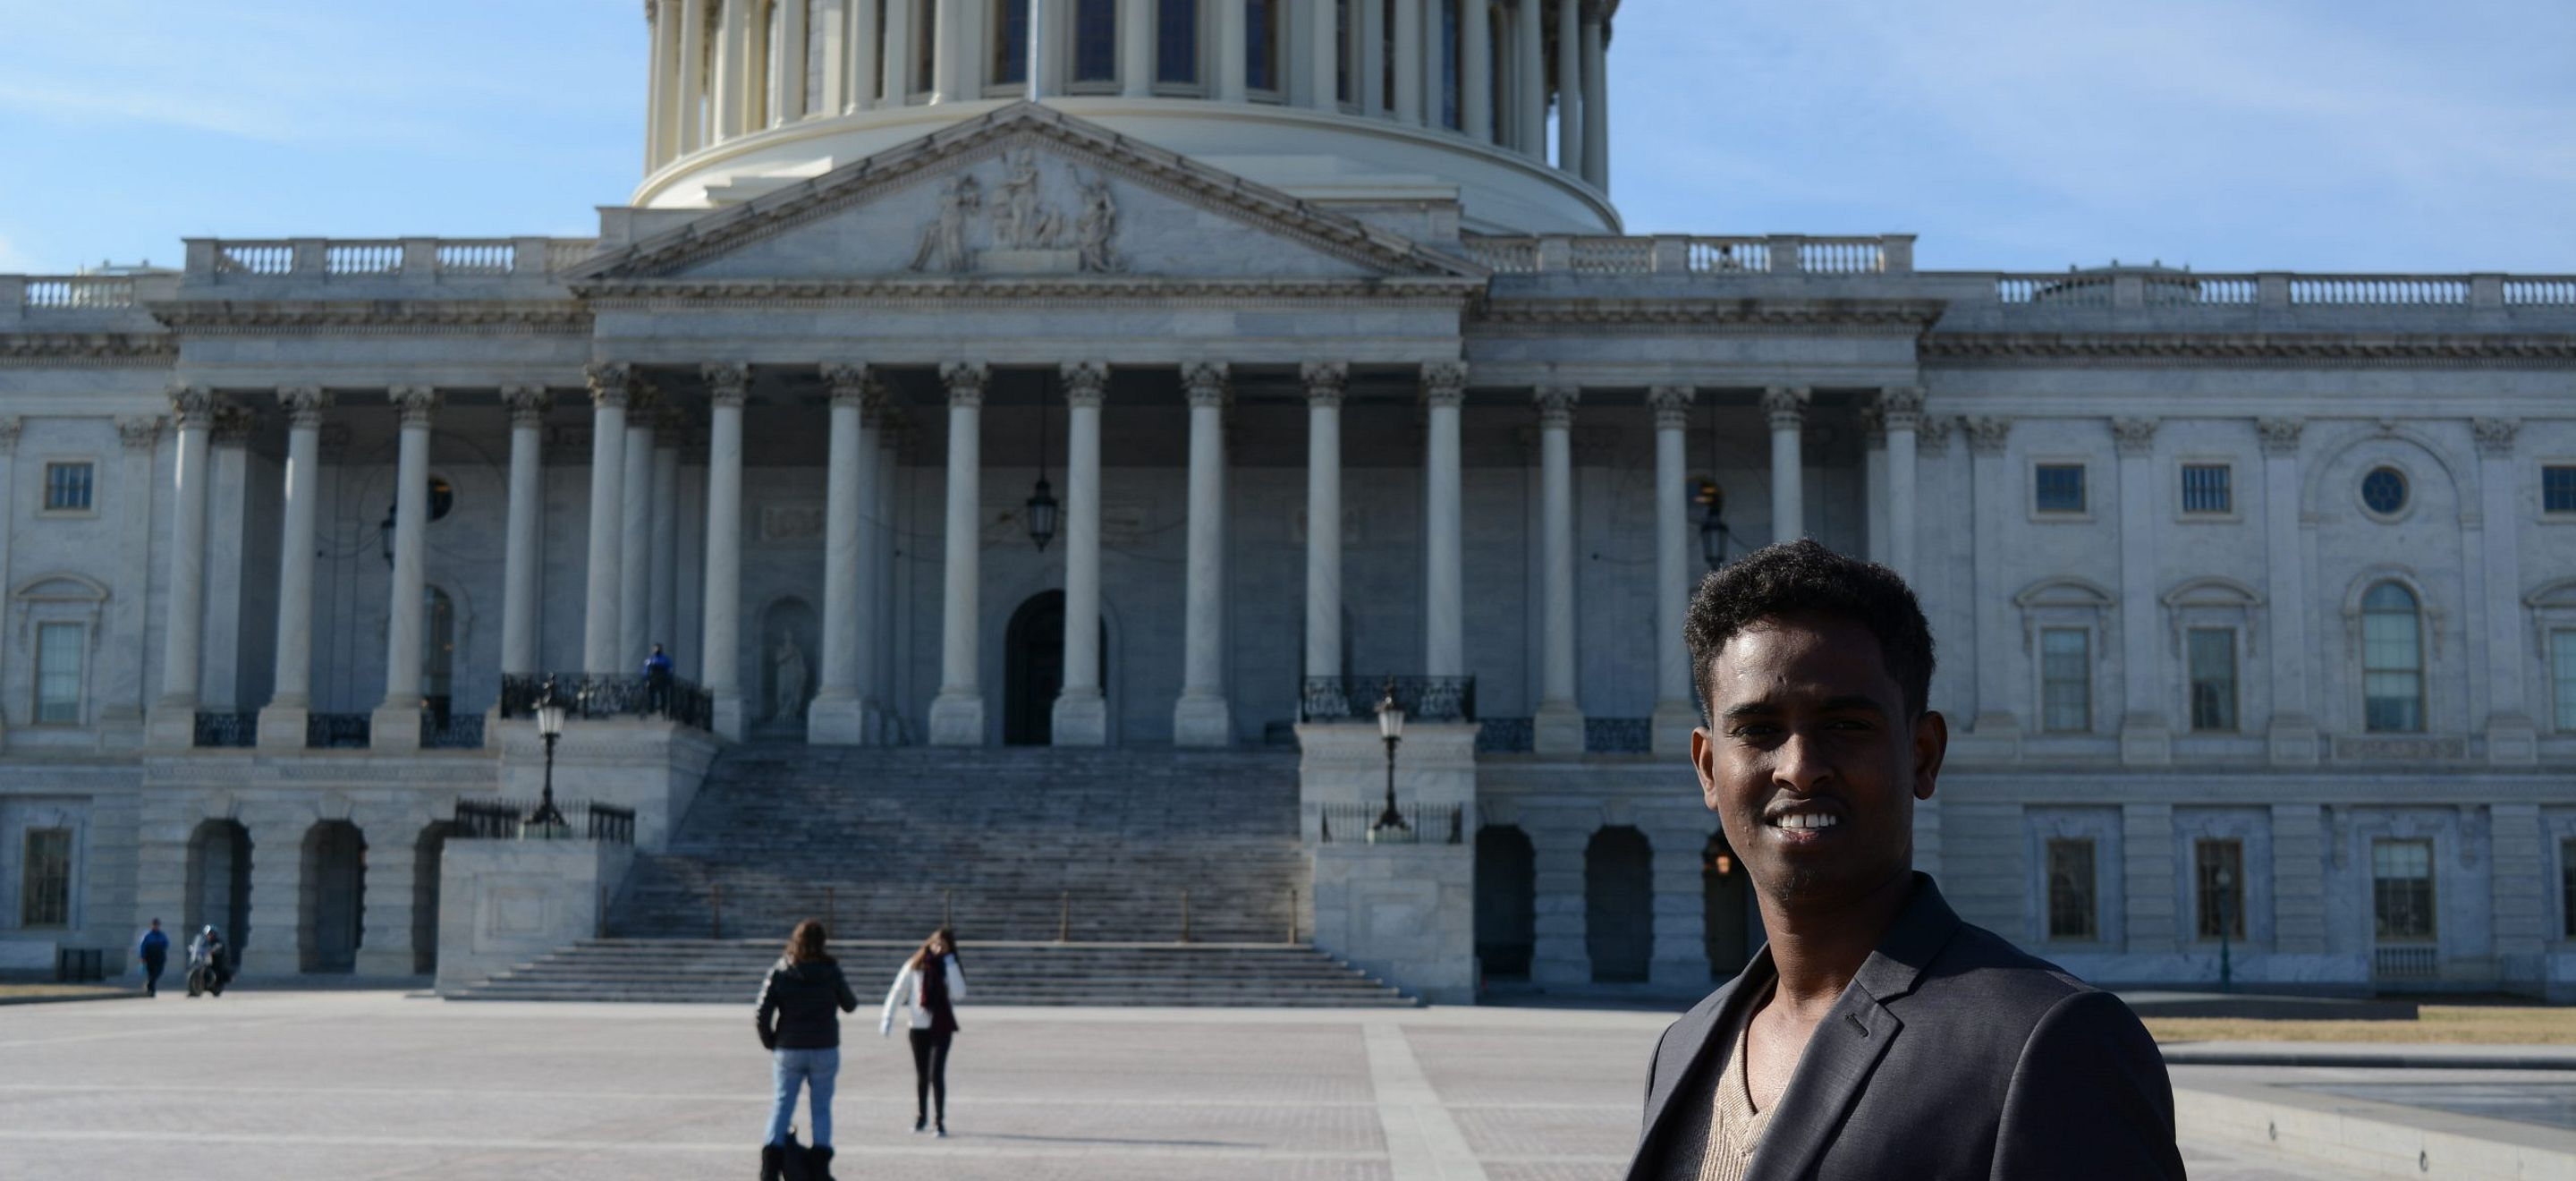 A young Somali man in a black suit jacket poses in front of the U.S. Capitol.